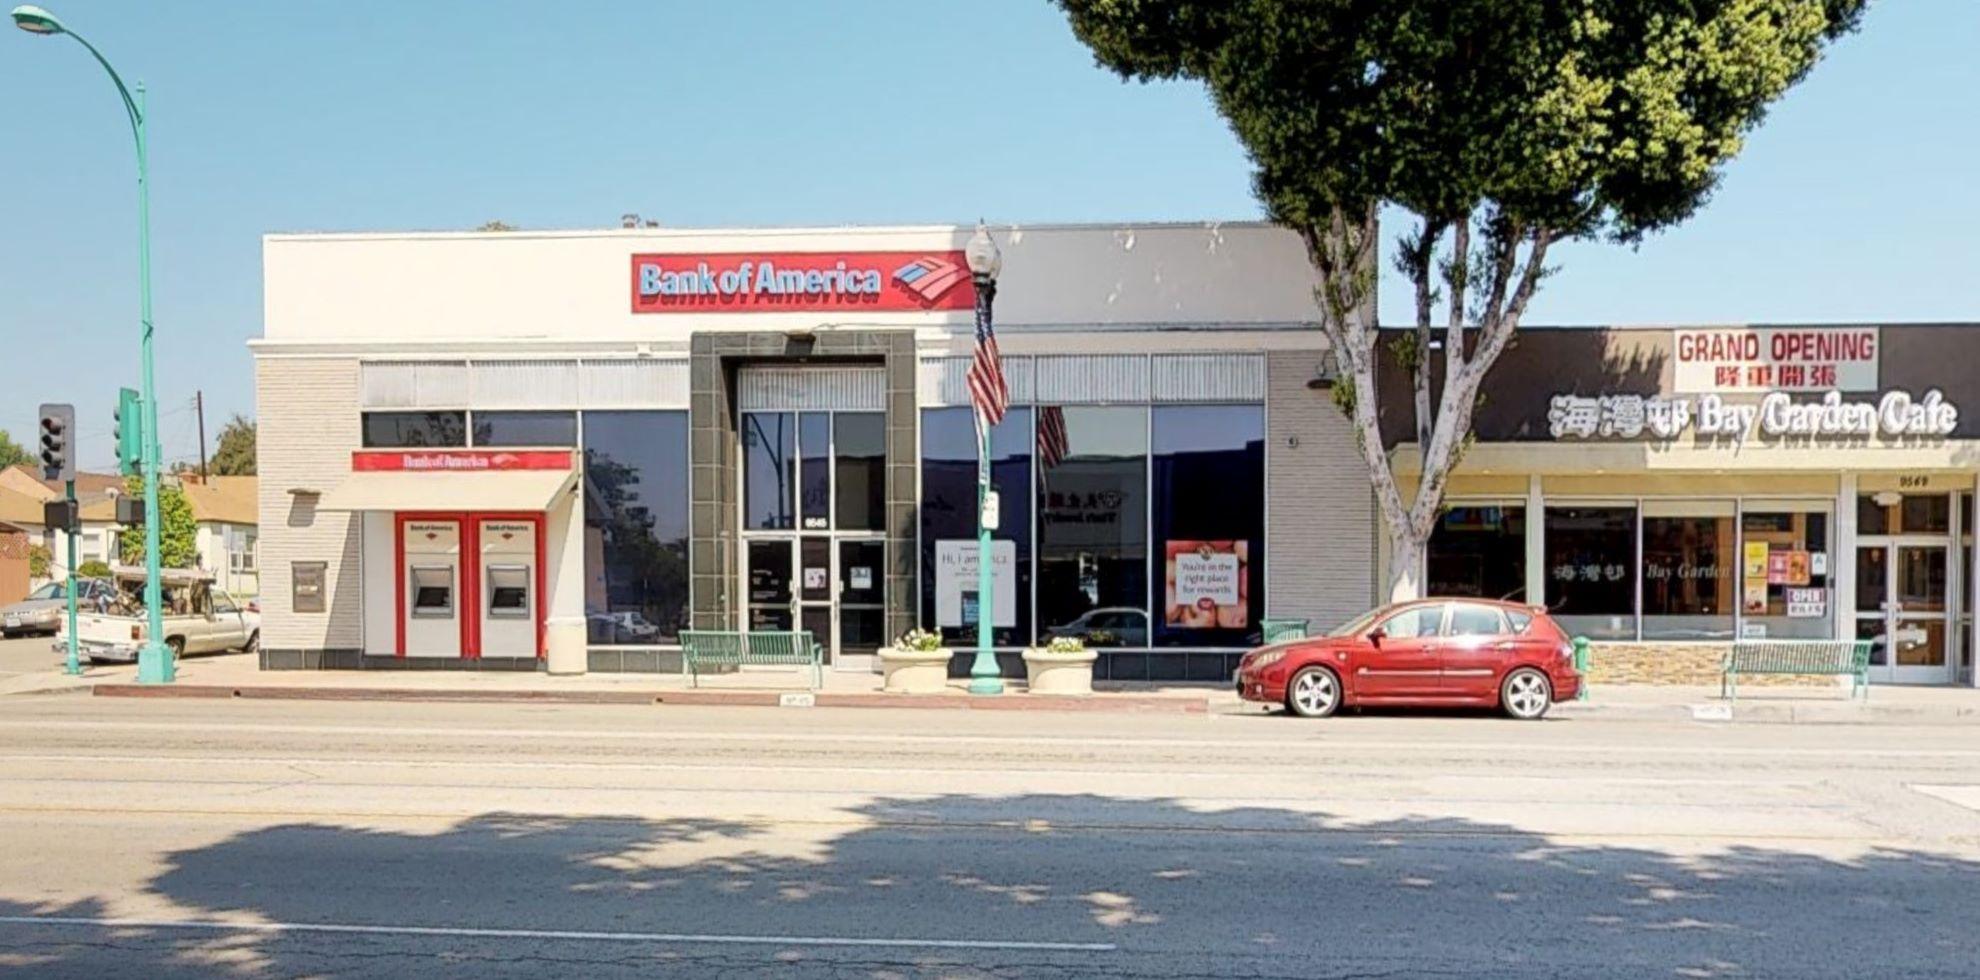 Bank of America financial center with walk-up ATM   9545 Las Tunas Dr, Temple City, CA 91780